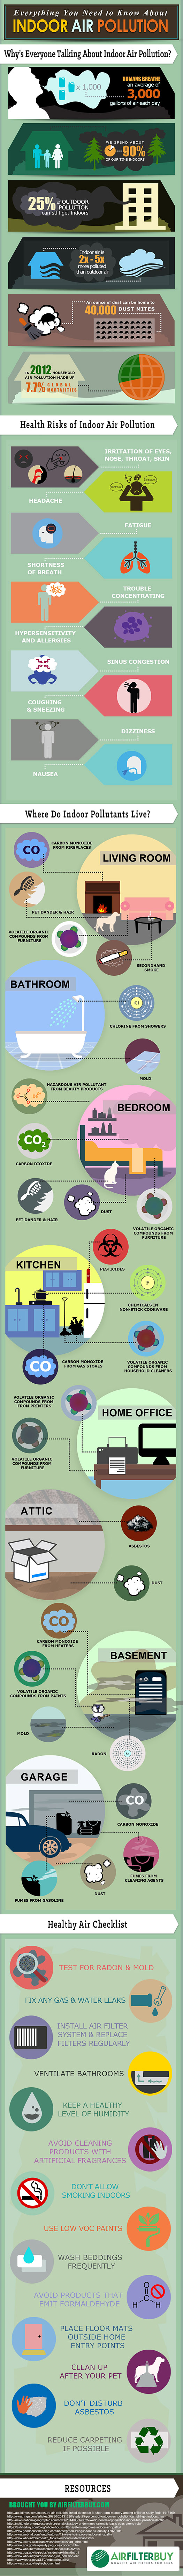 Indoor air pollution, air pollution, home air pollution, home pollution deaths, home pollution health risks, air pollution health risks, health and air pollution, residential air pollution, air quality, residential air quality, air quality and health, infographics, air quality infographic, air pollution infographic, reader submission,